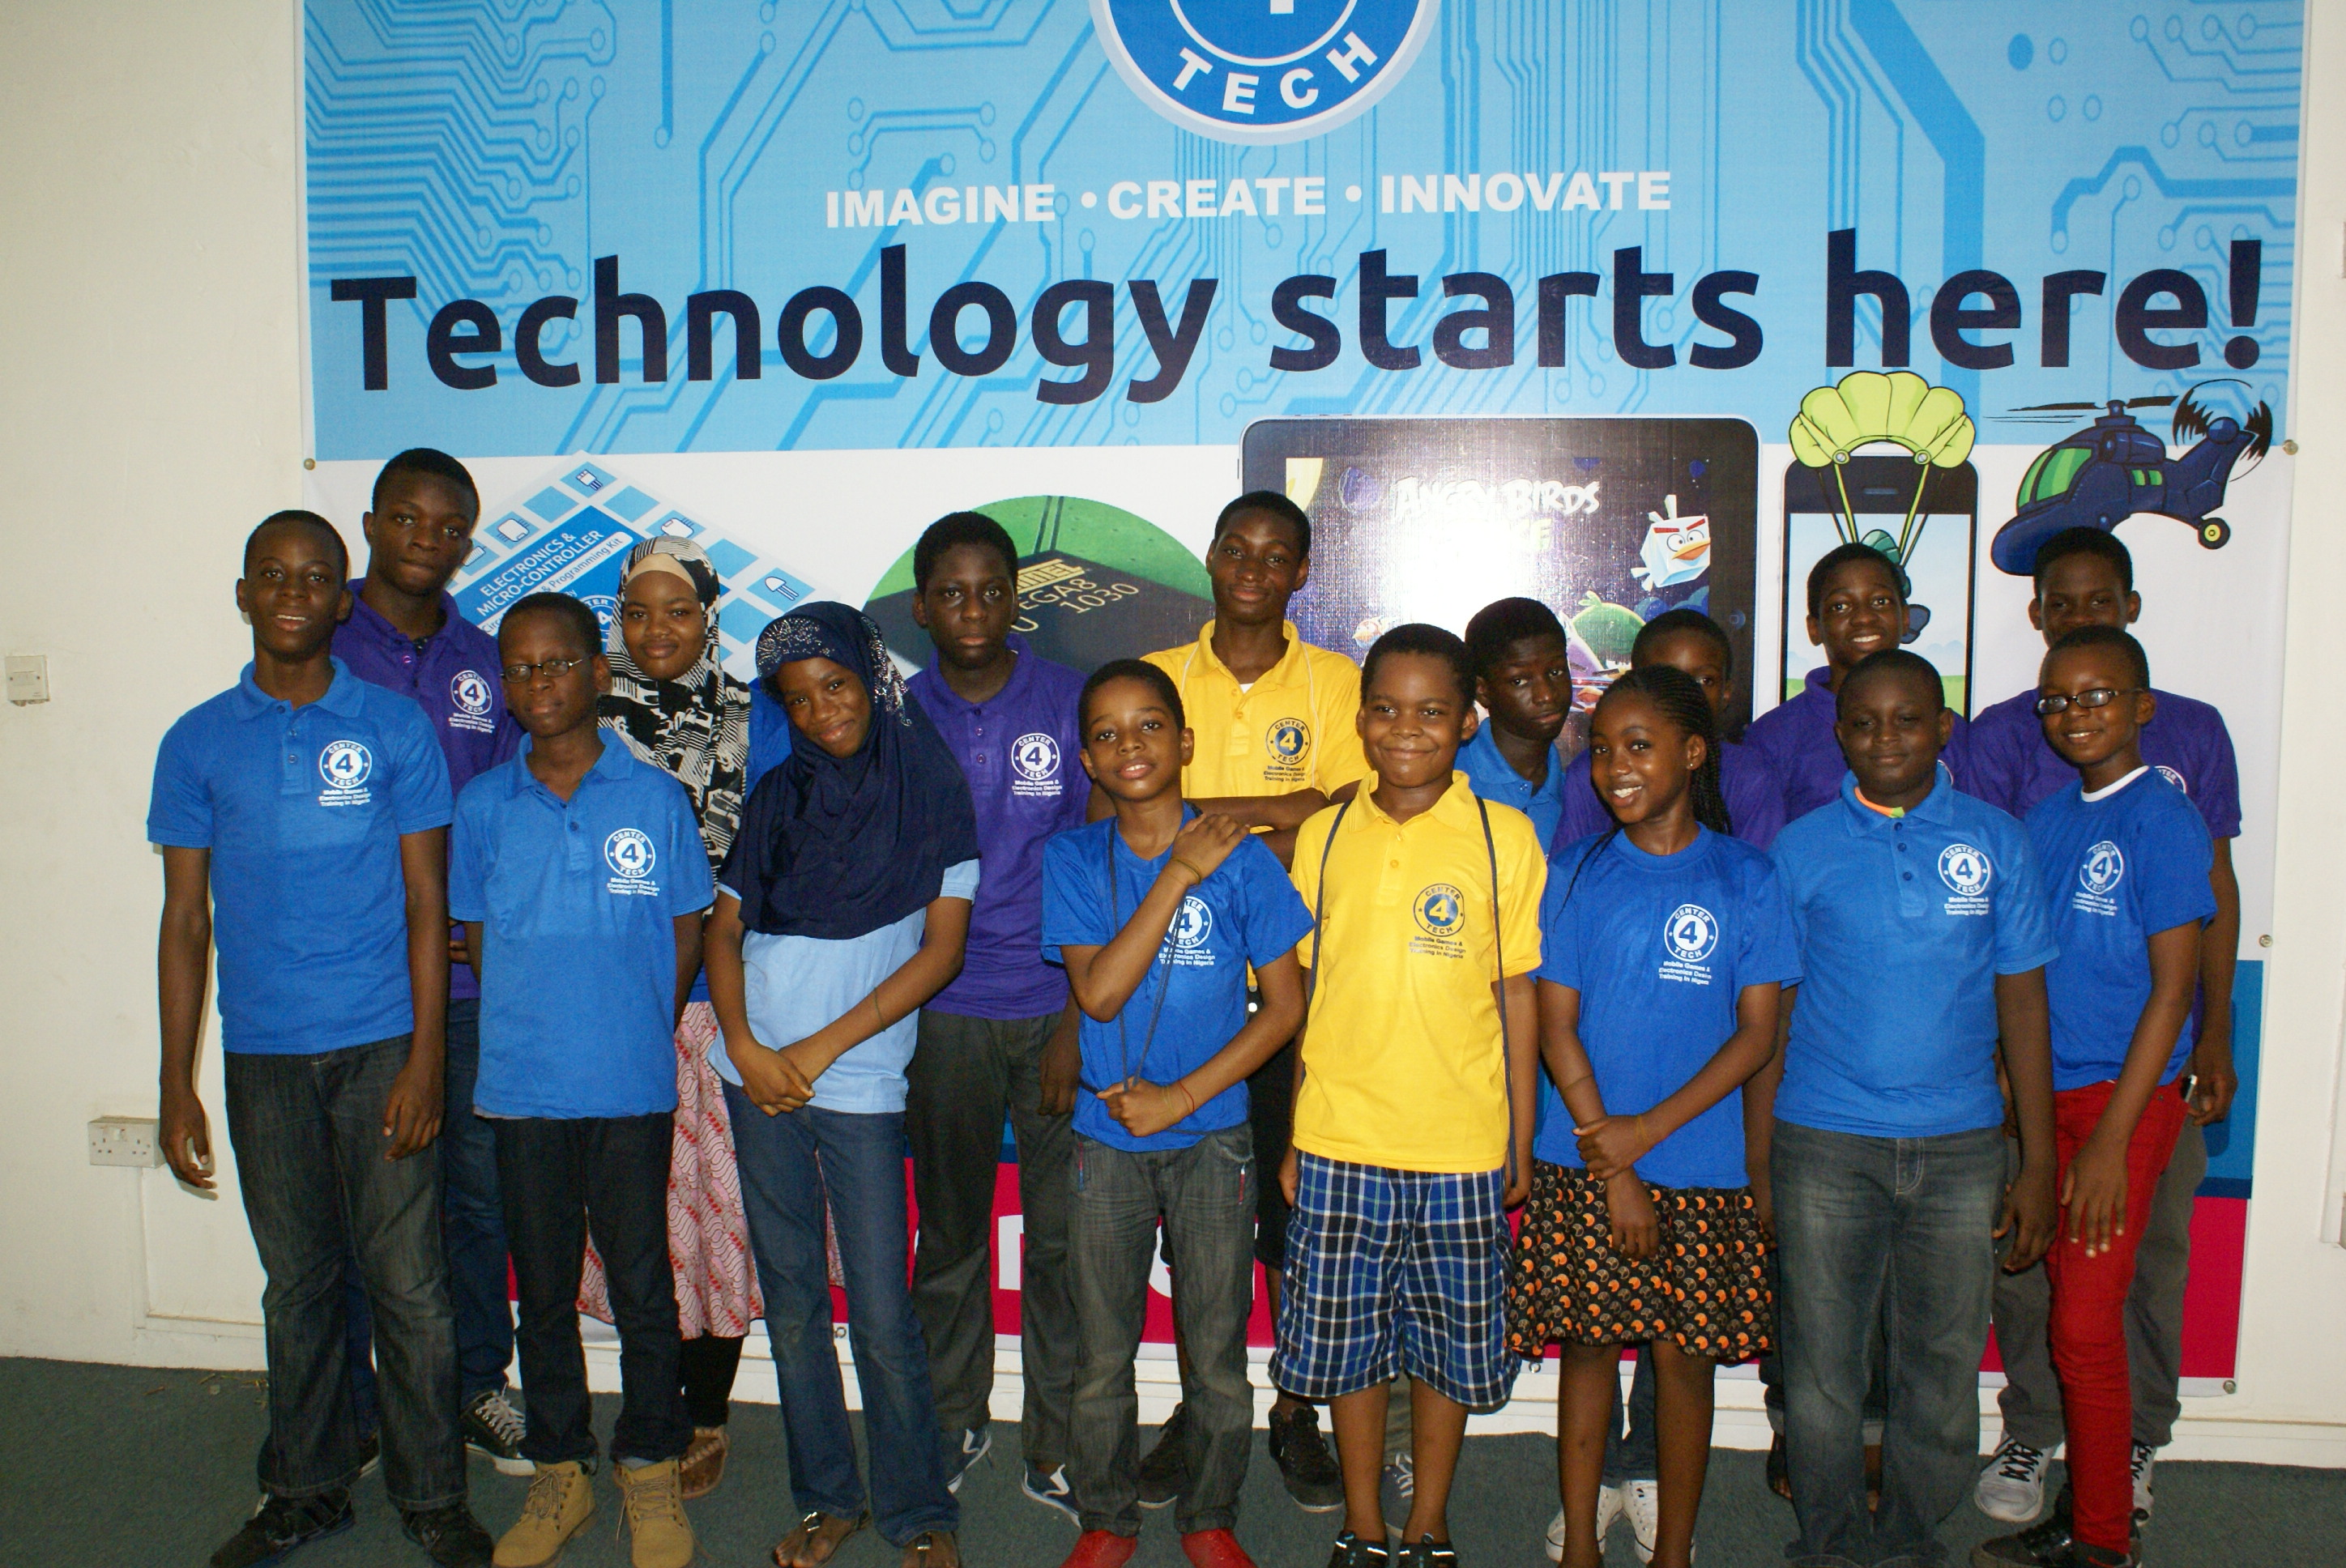 Center4Tech is taking applications for its 2015 Young Inventors Summer Camp